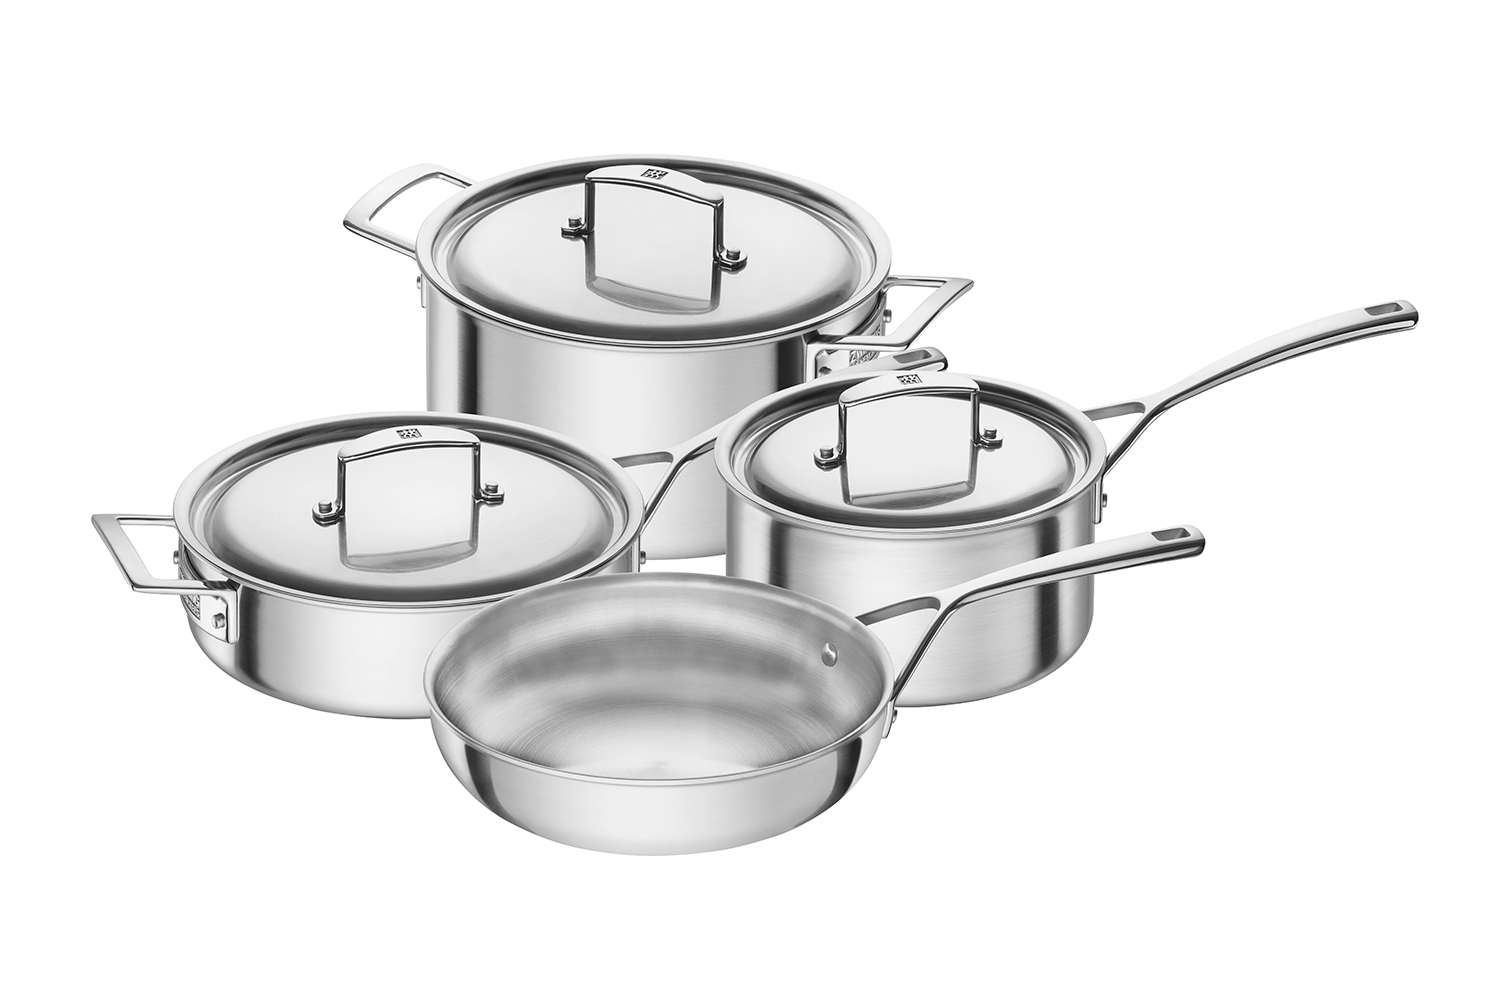 Zwilling J.A. Aurora 5-Ply Stainless Steel 7 Piece Cookware Set